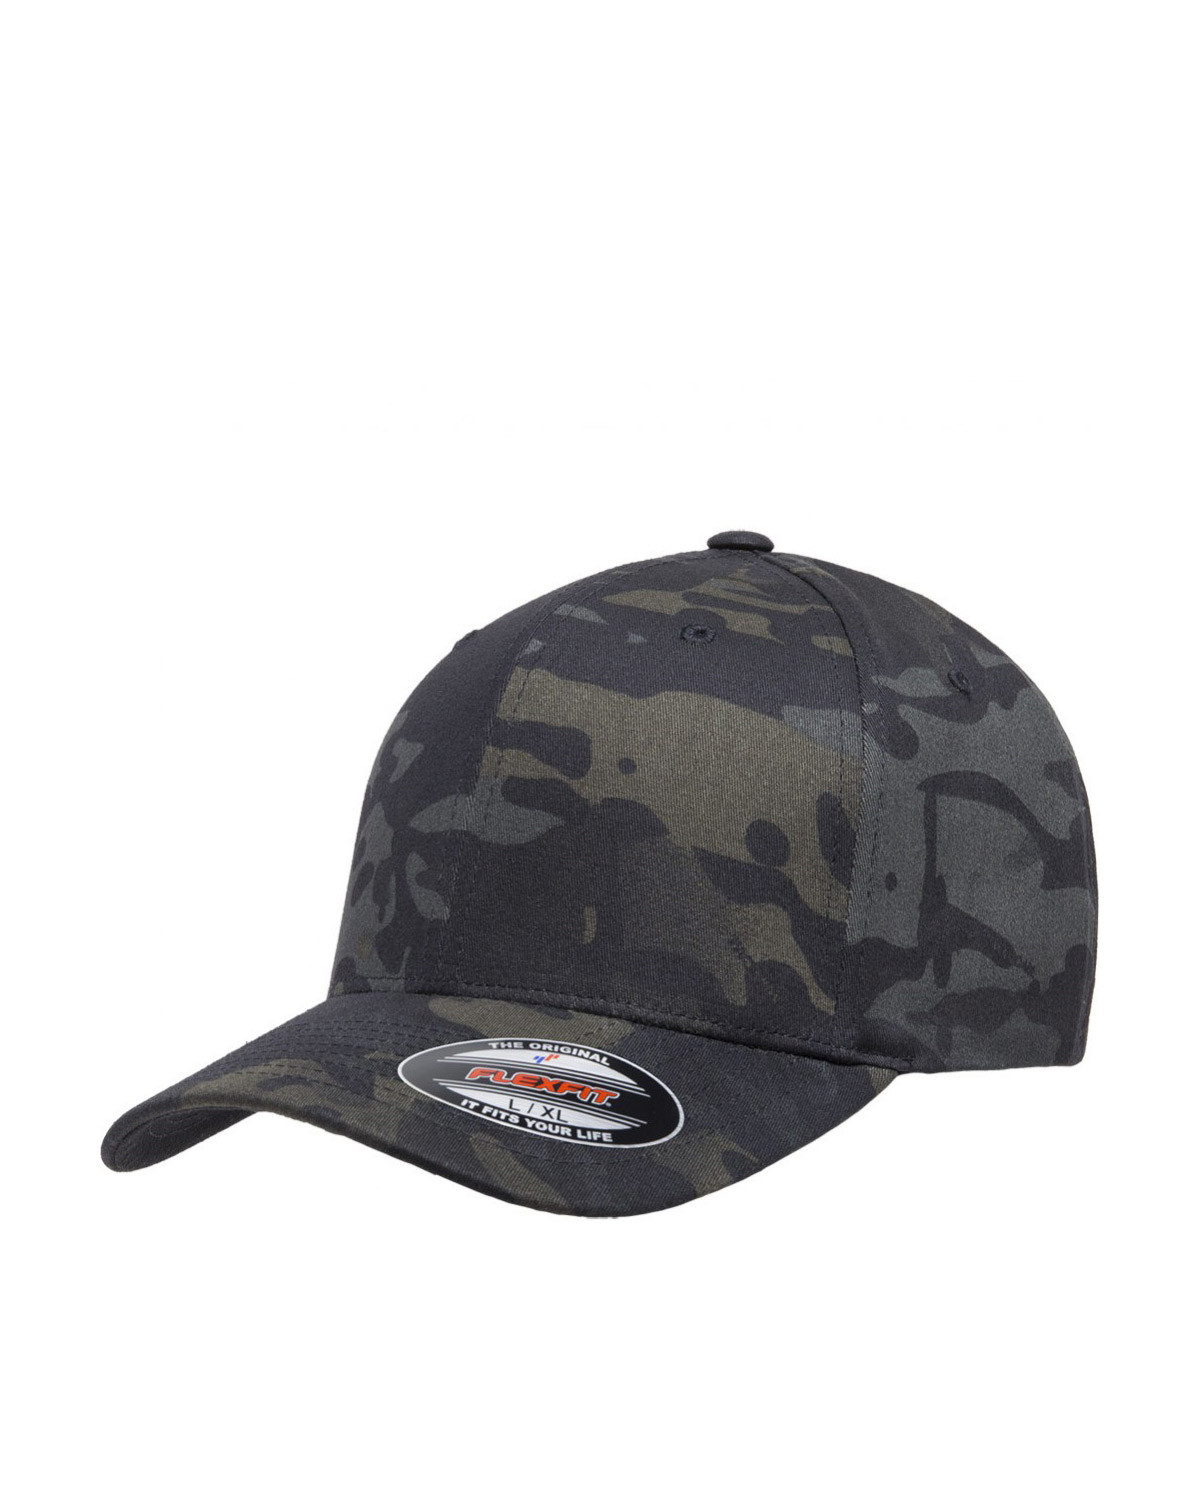 Image of   Flexfit Baseball Cap (Sort / Multicam, L/XL)